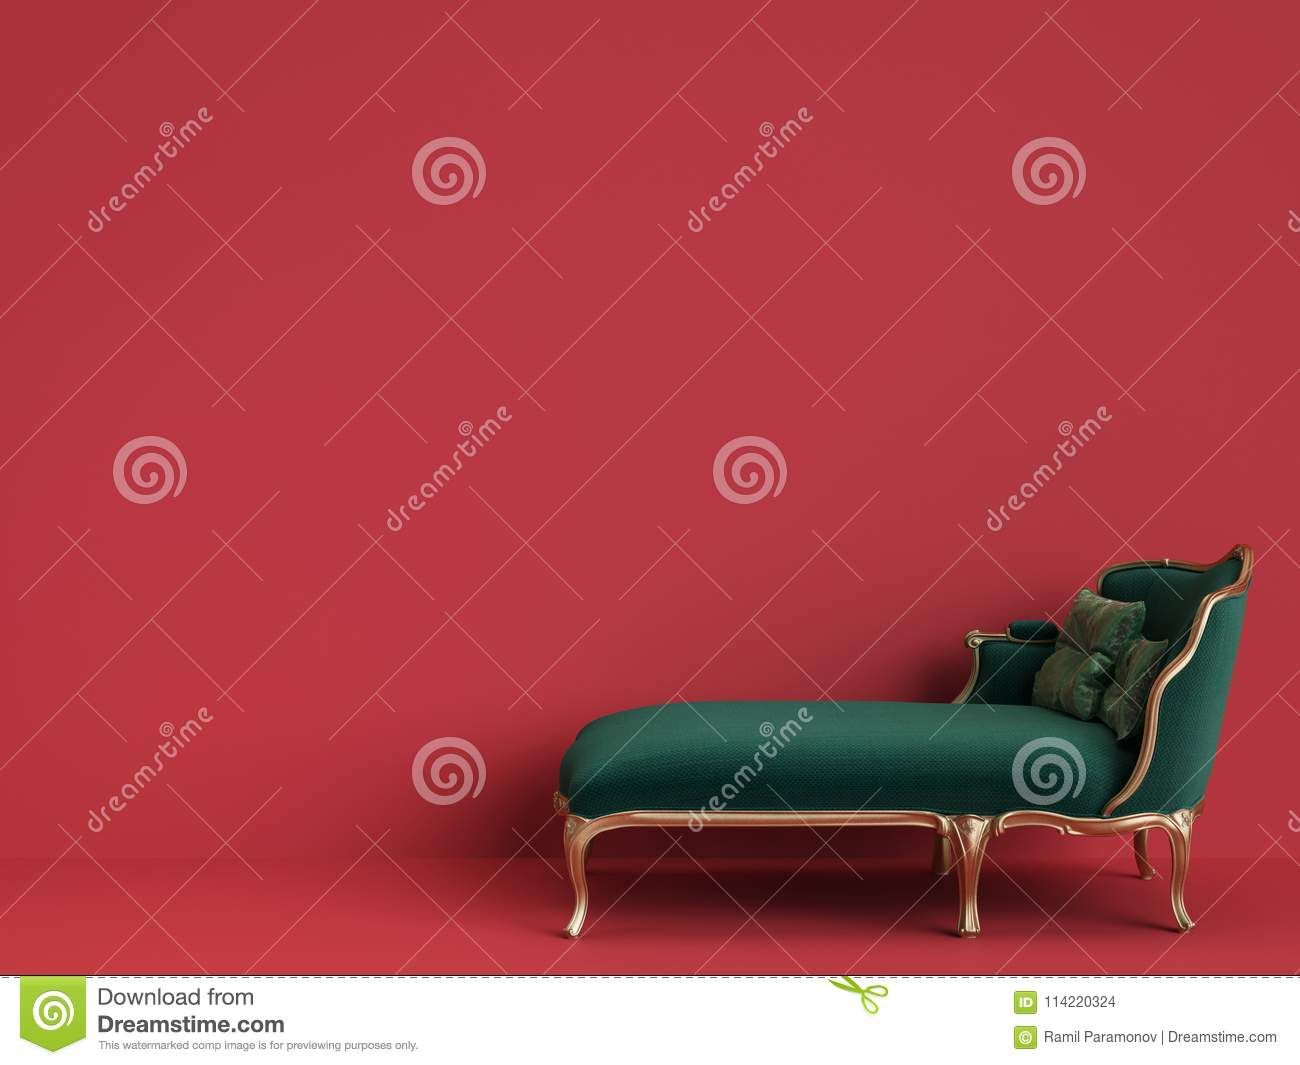 Classic Chaise Longue In Emerald Green And Gold On Red Backgroun